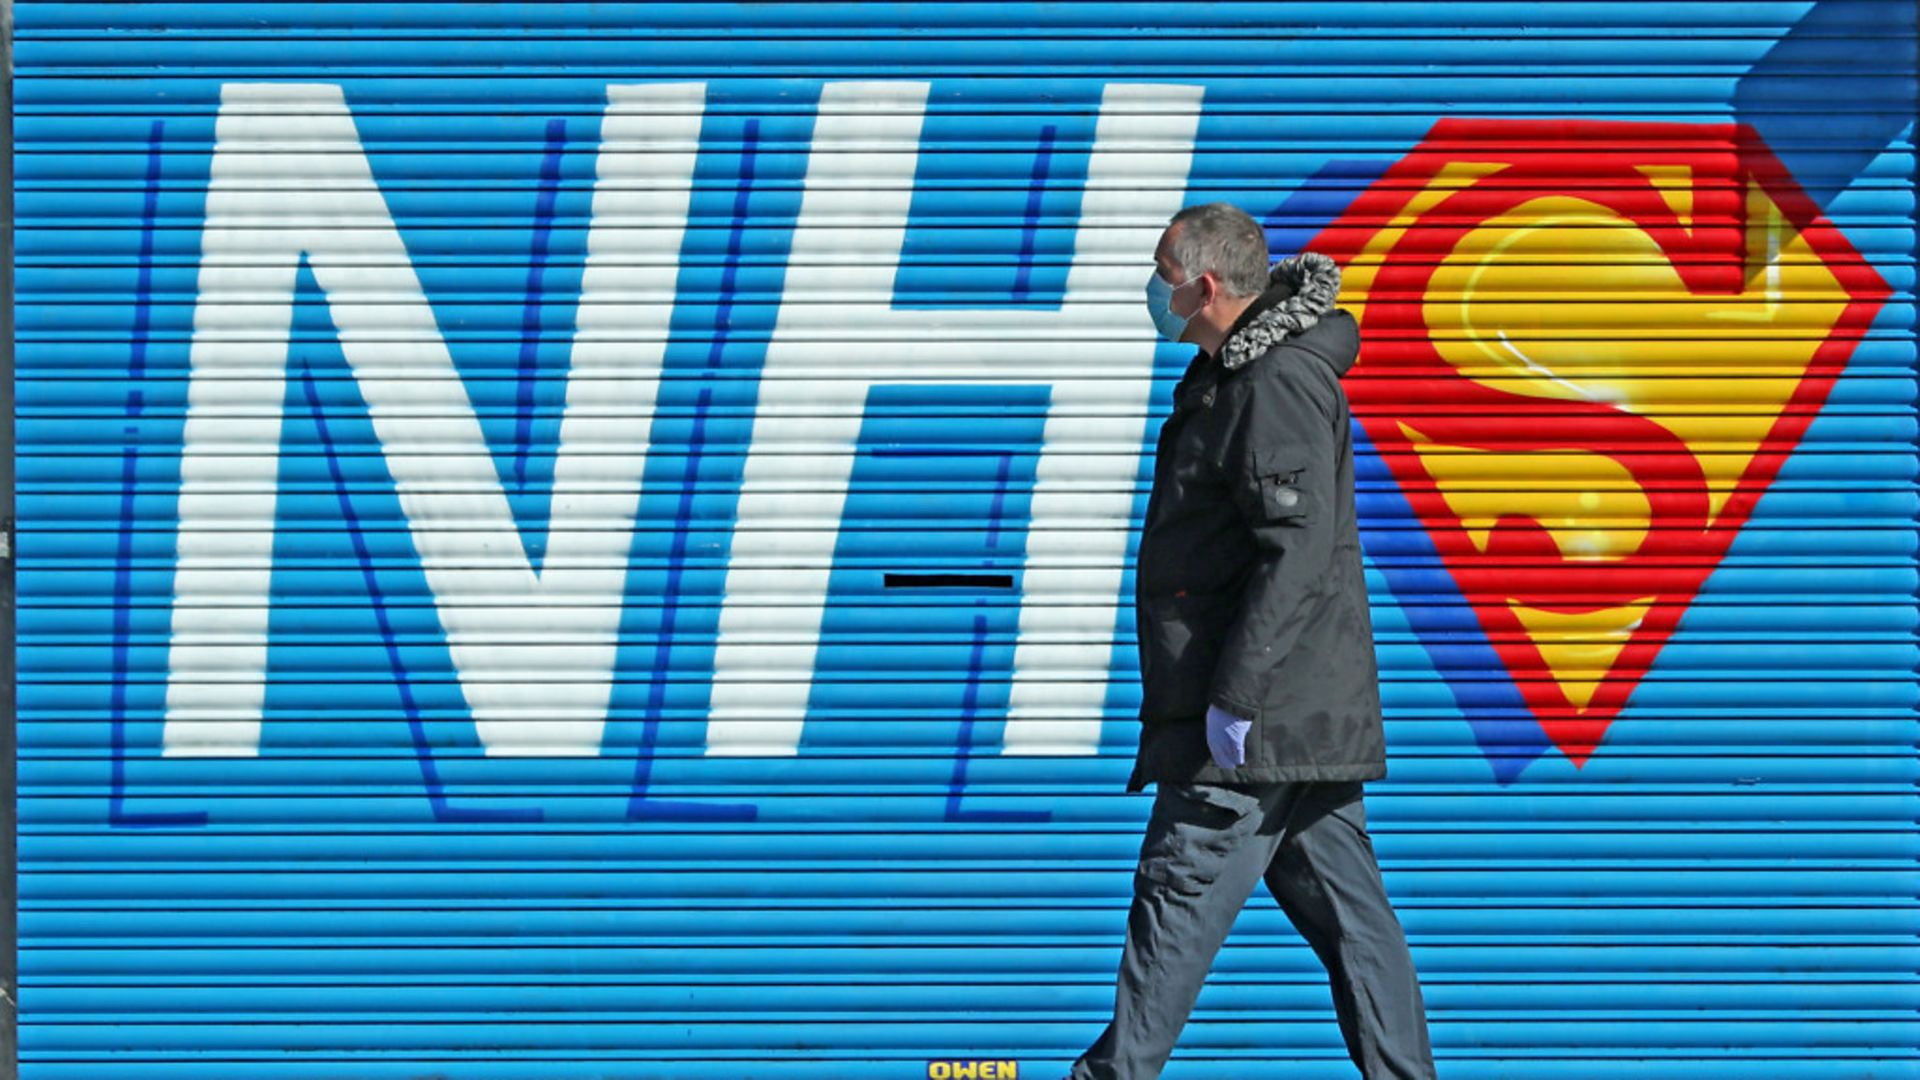 A man walks past a sign created in support of the NHS during the pandemic - Credit: Peter Byrne/PA